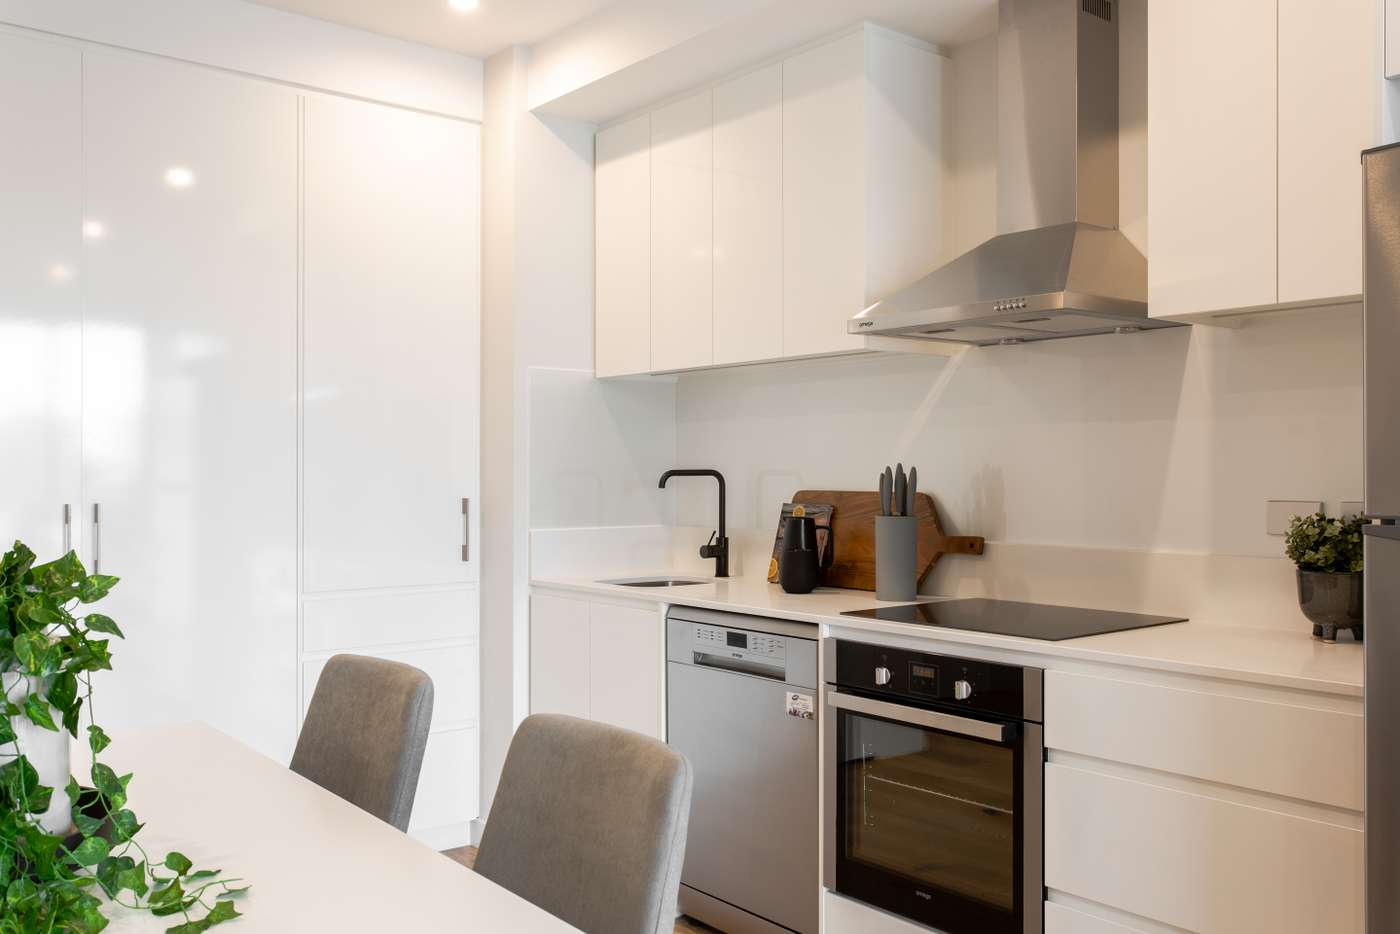 Seventh view of Homely apartment listing, 1402/297 Pirie Street, Adelaide SA 5000